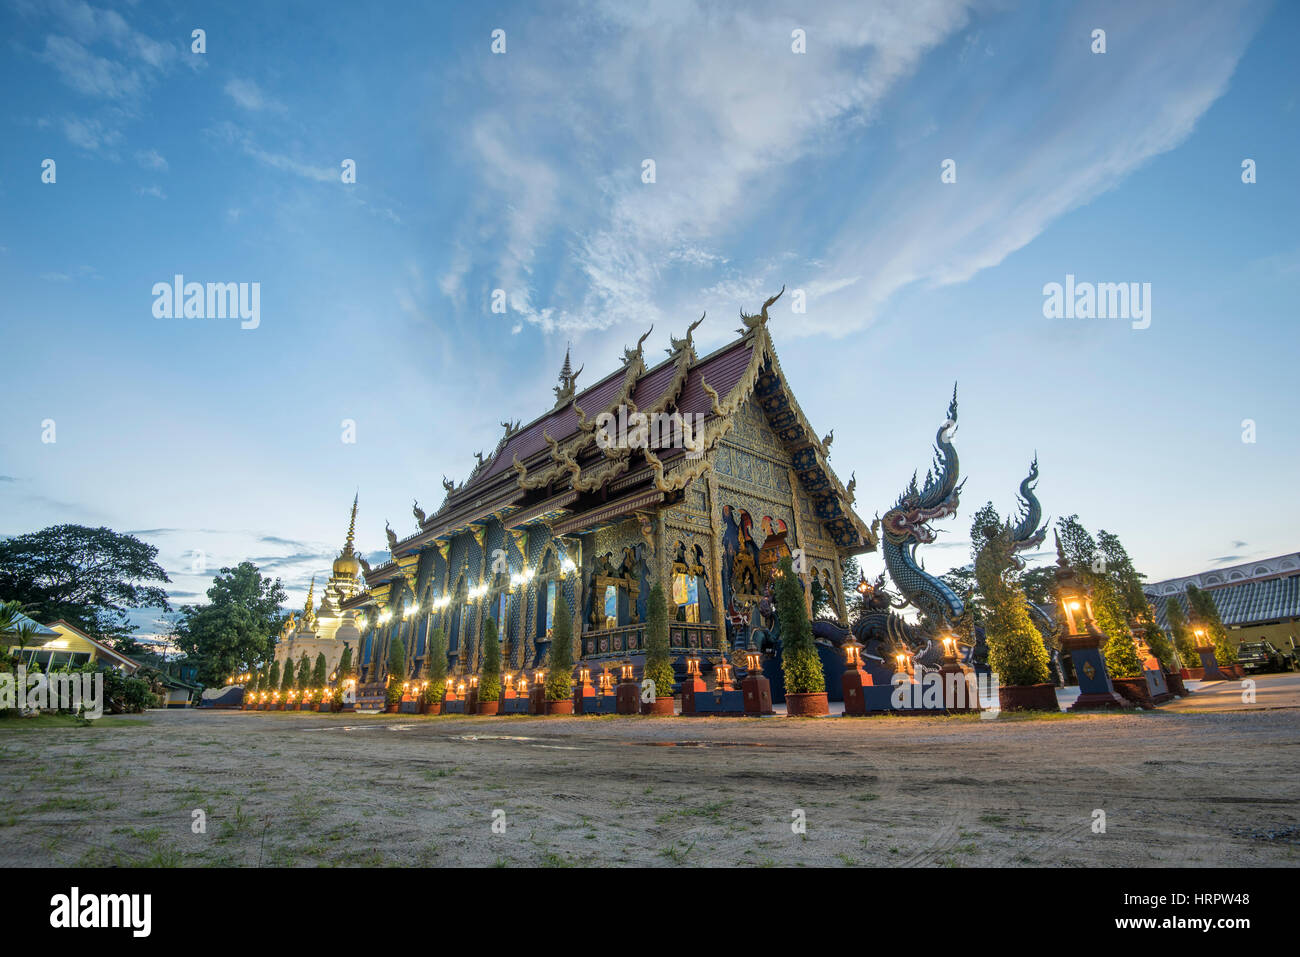 wat rong sua ten temple is the famous place in chiangrai another name is blue temple locate at chiangrai province north of thailand